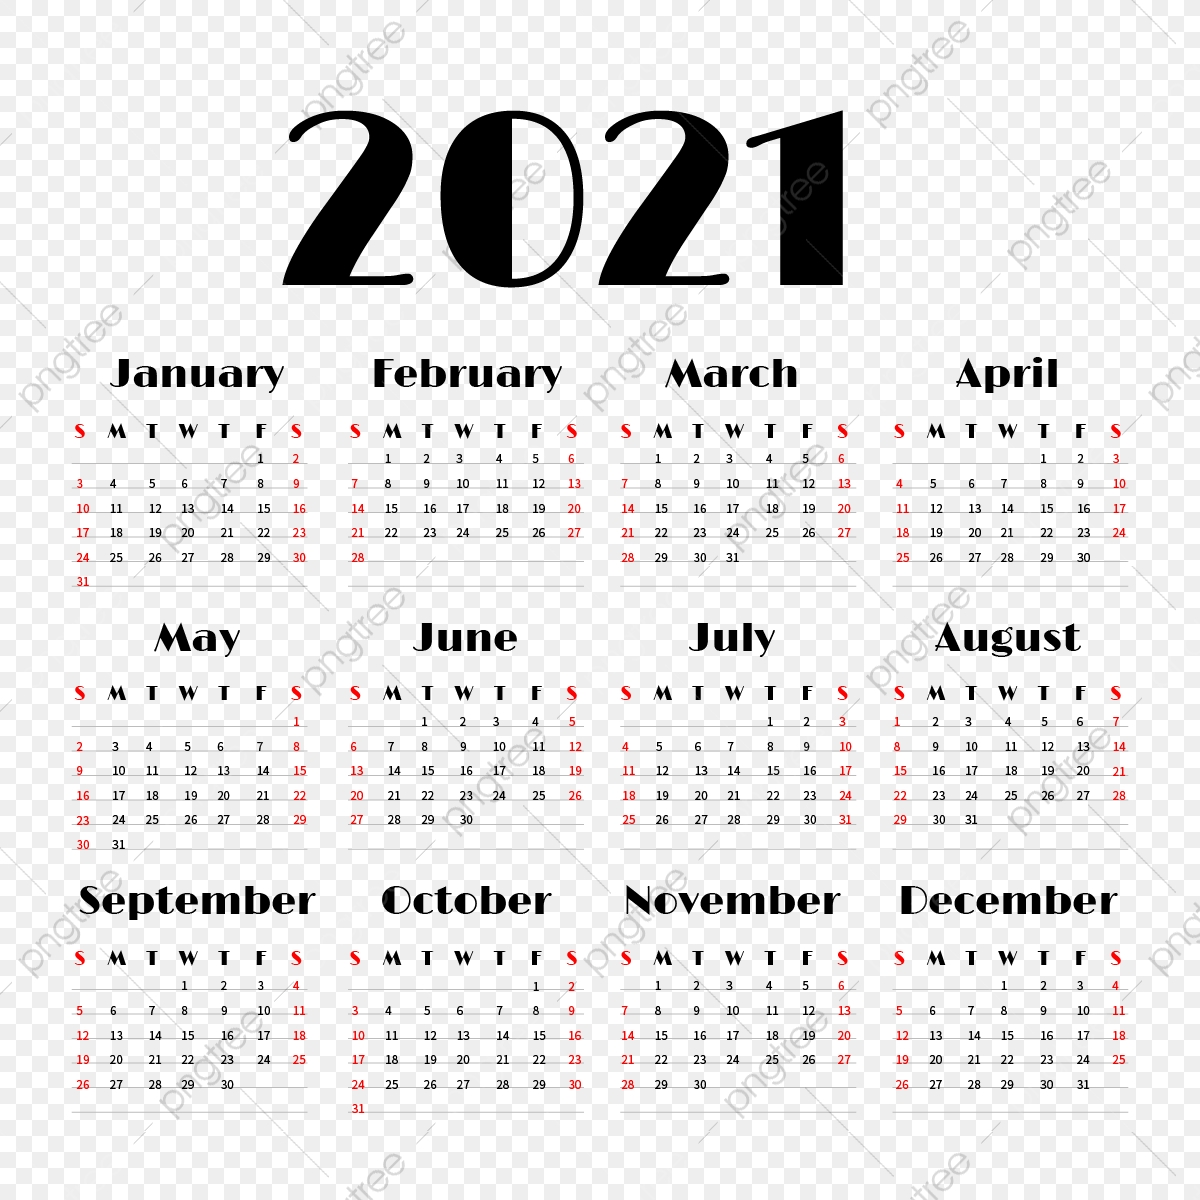 Ramazan Calendar Png Images Vector And Psd Files Free Download On Pngtree